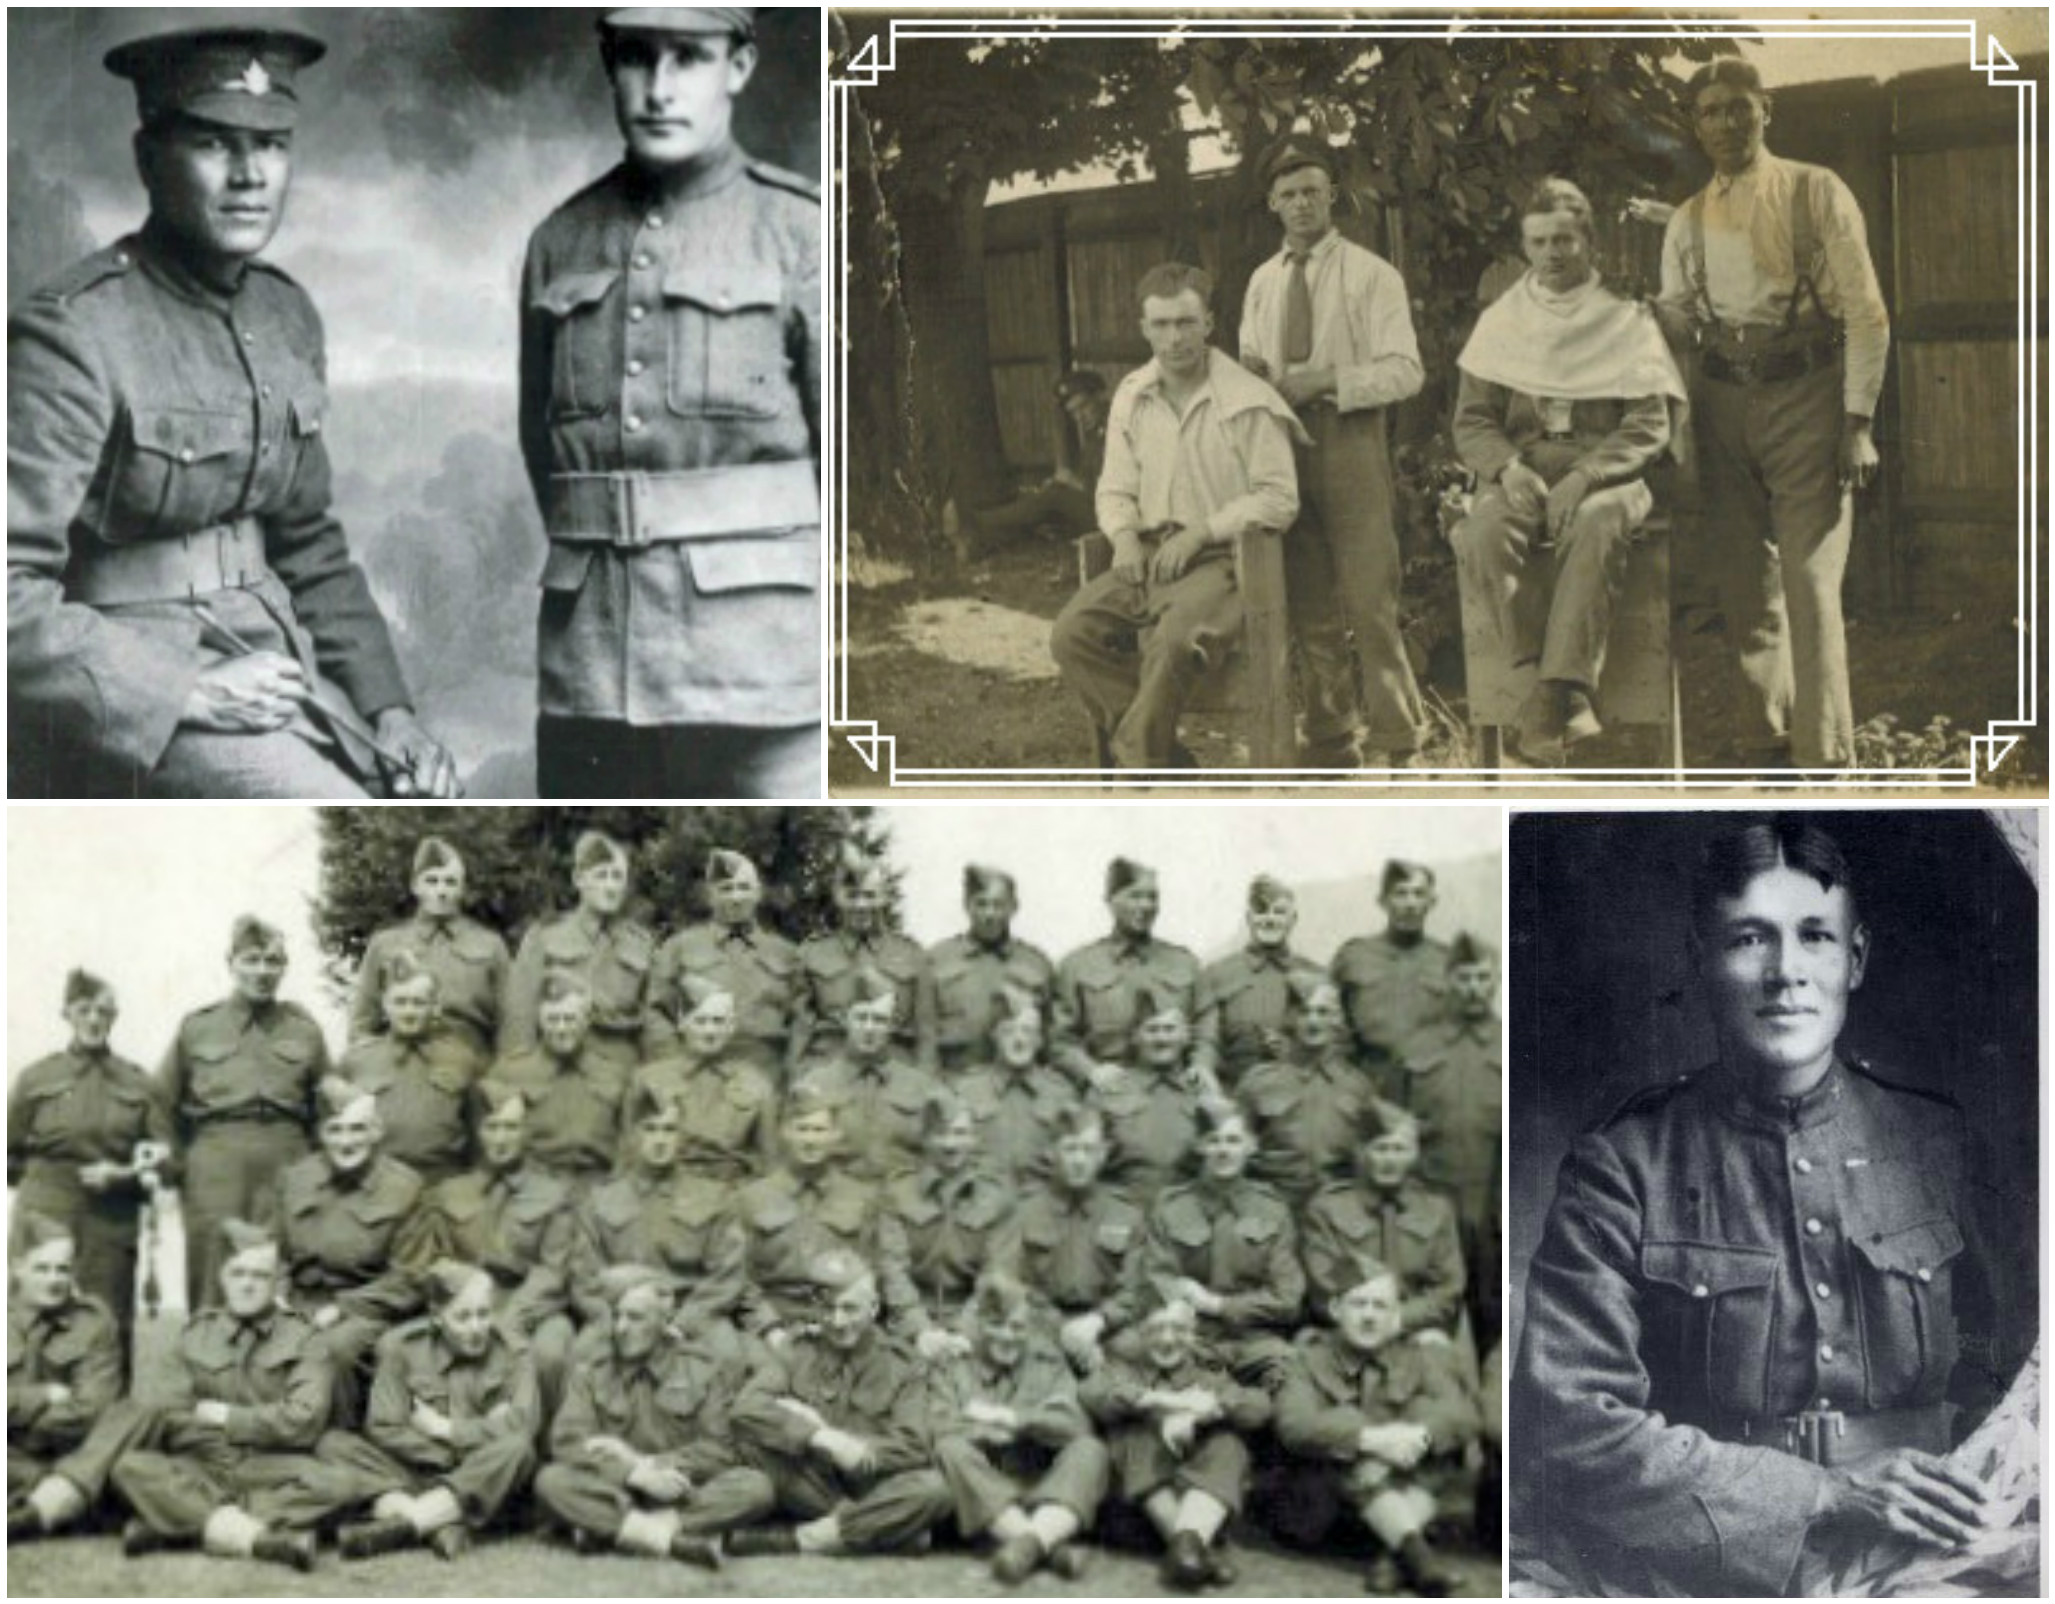 All photos seen here are from World War I, except for the bottom left, which is the Canadian Veteran Reserves. My great-grandfather, Frederick Primeau is seen standing second-left. The barber photo is actually a W.W. 1 'postcard'. Primeau is the tall man far right. He fought in Flanders Field. (Photos: Whachell/ Hinz collection)